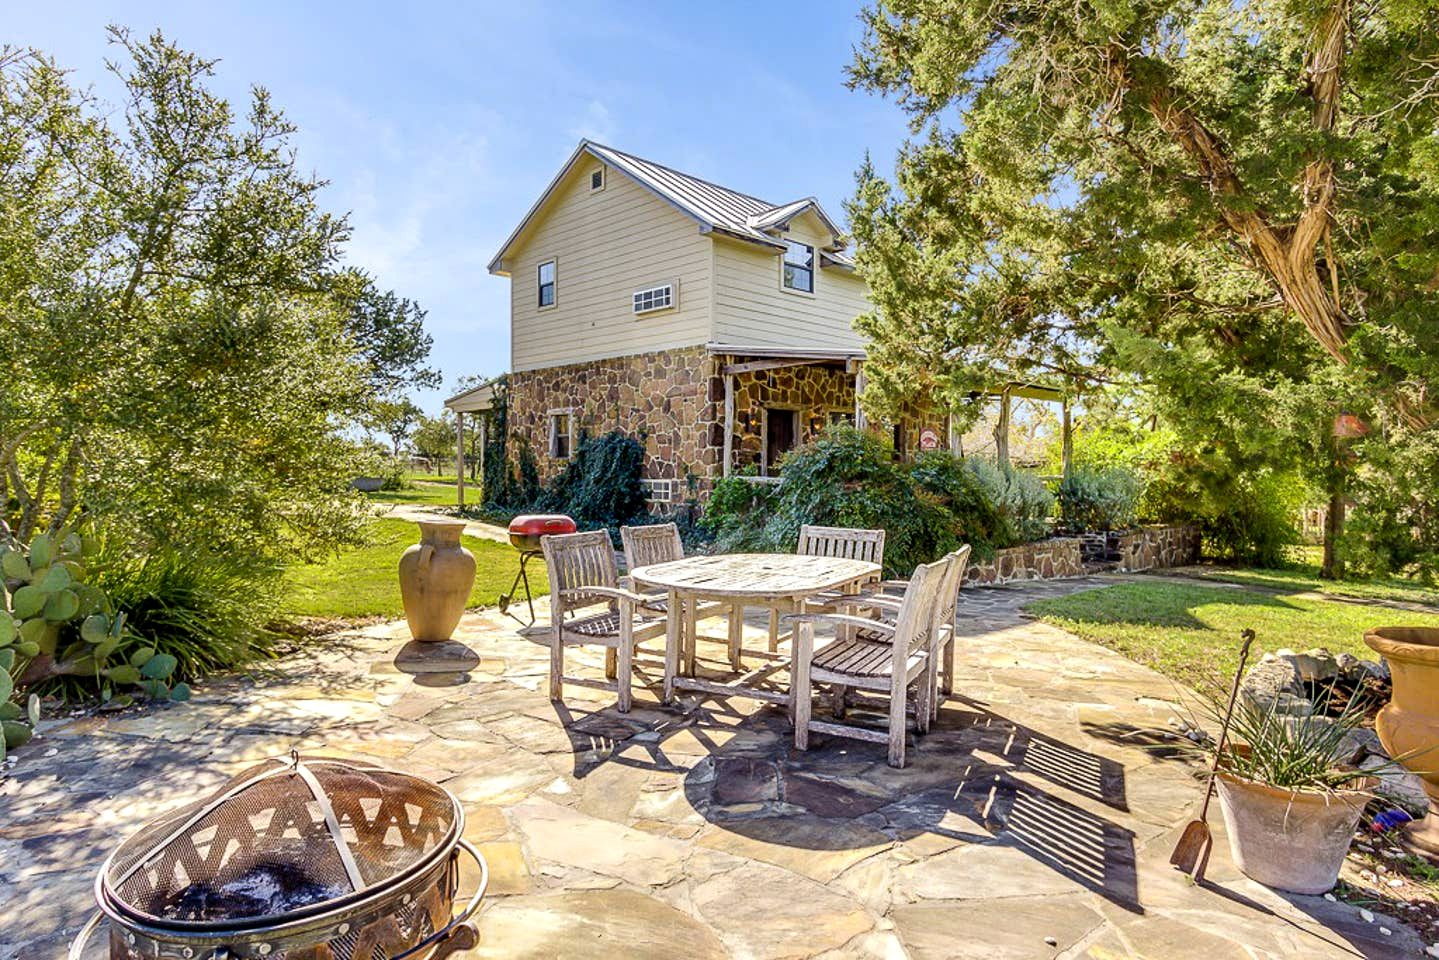 This Texas Hill Country vacation rental is ideal for weekend getaways near San Antonio